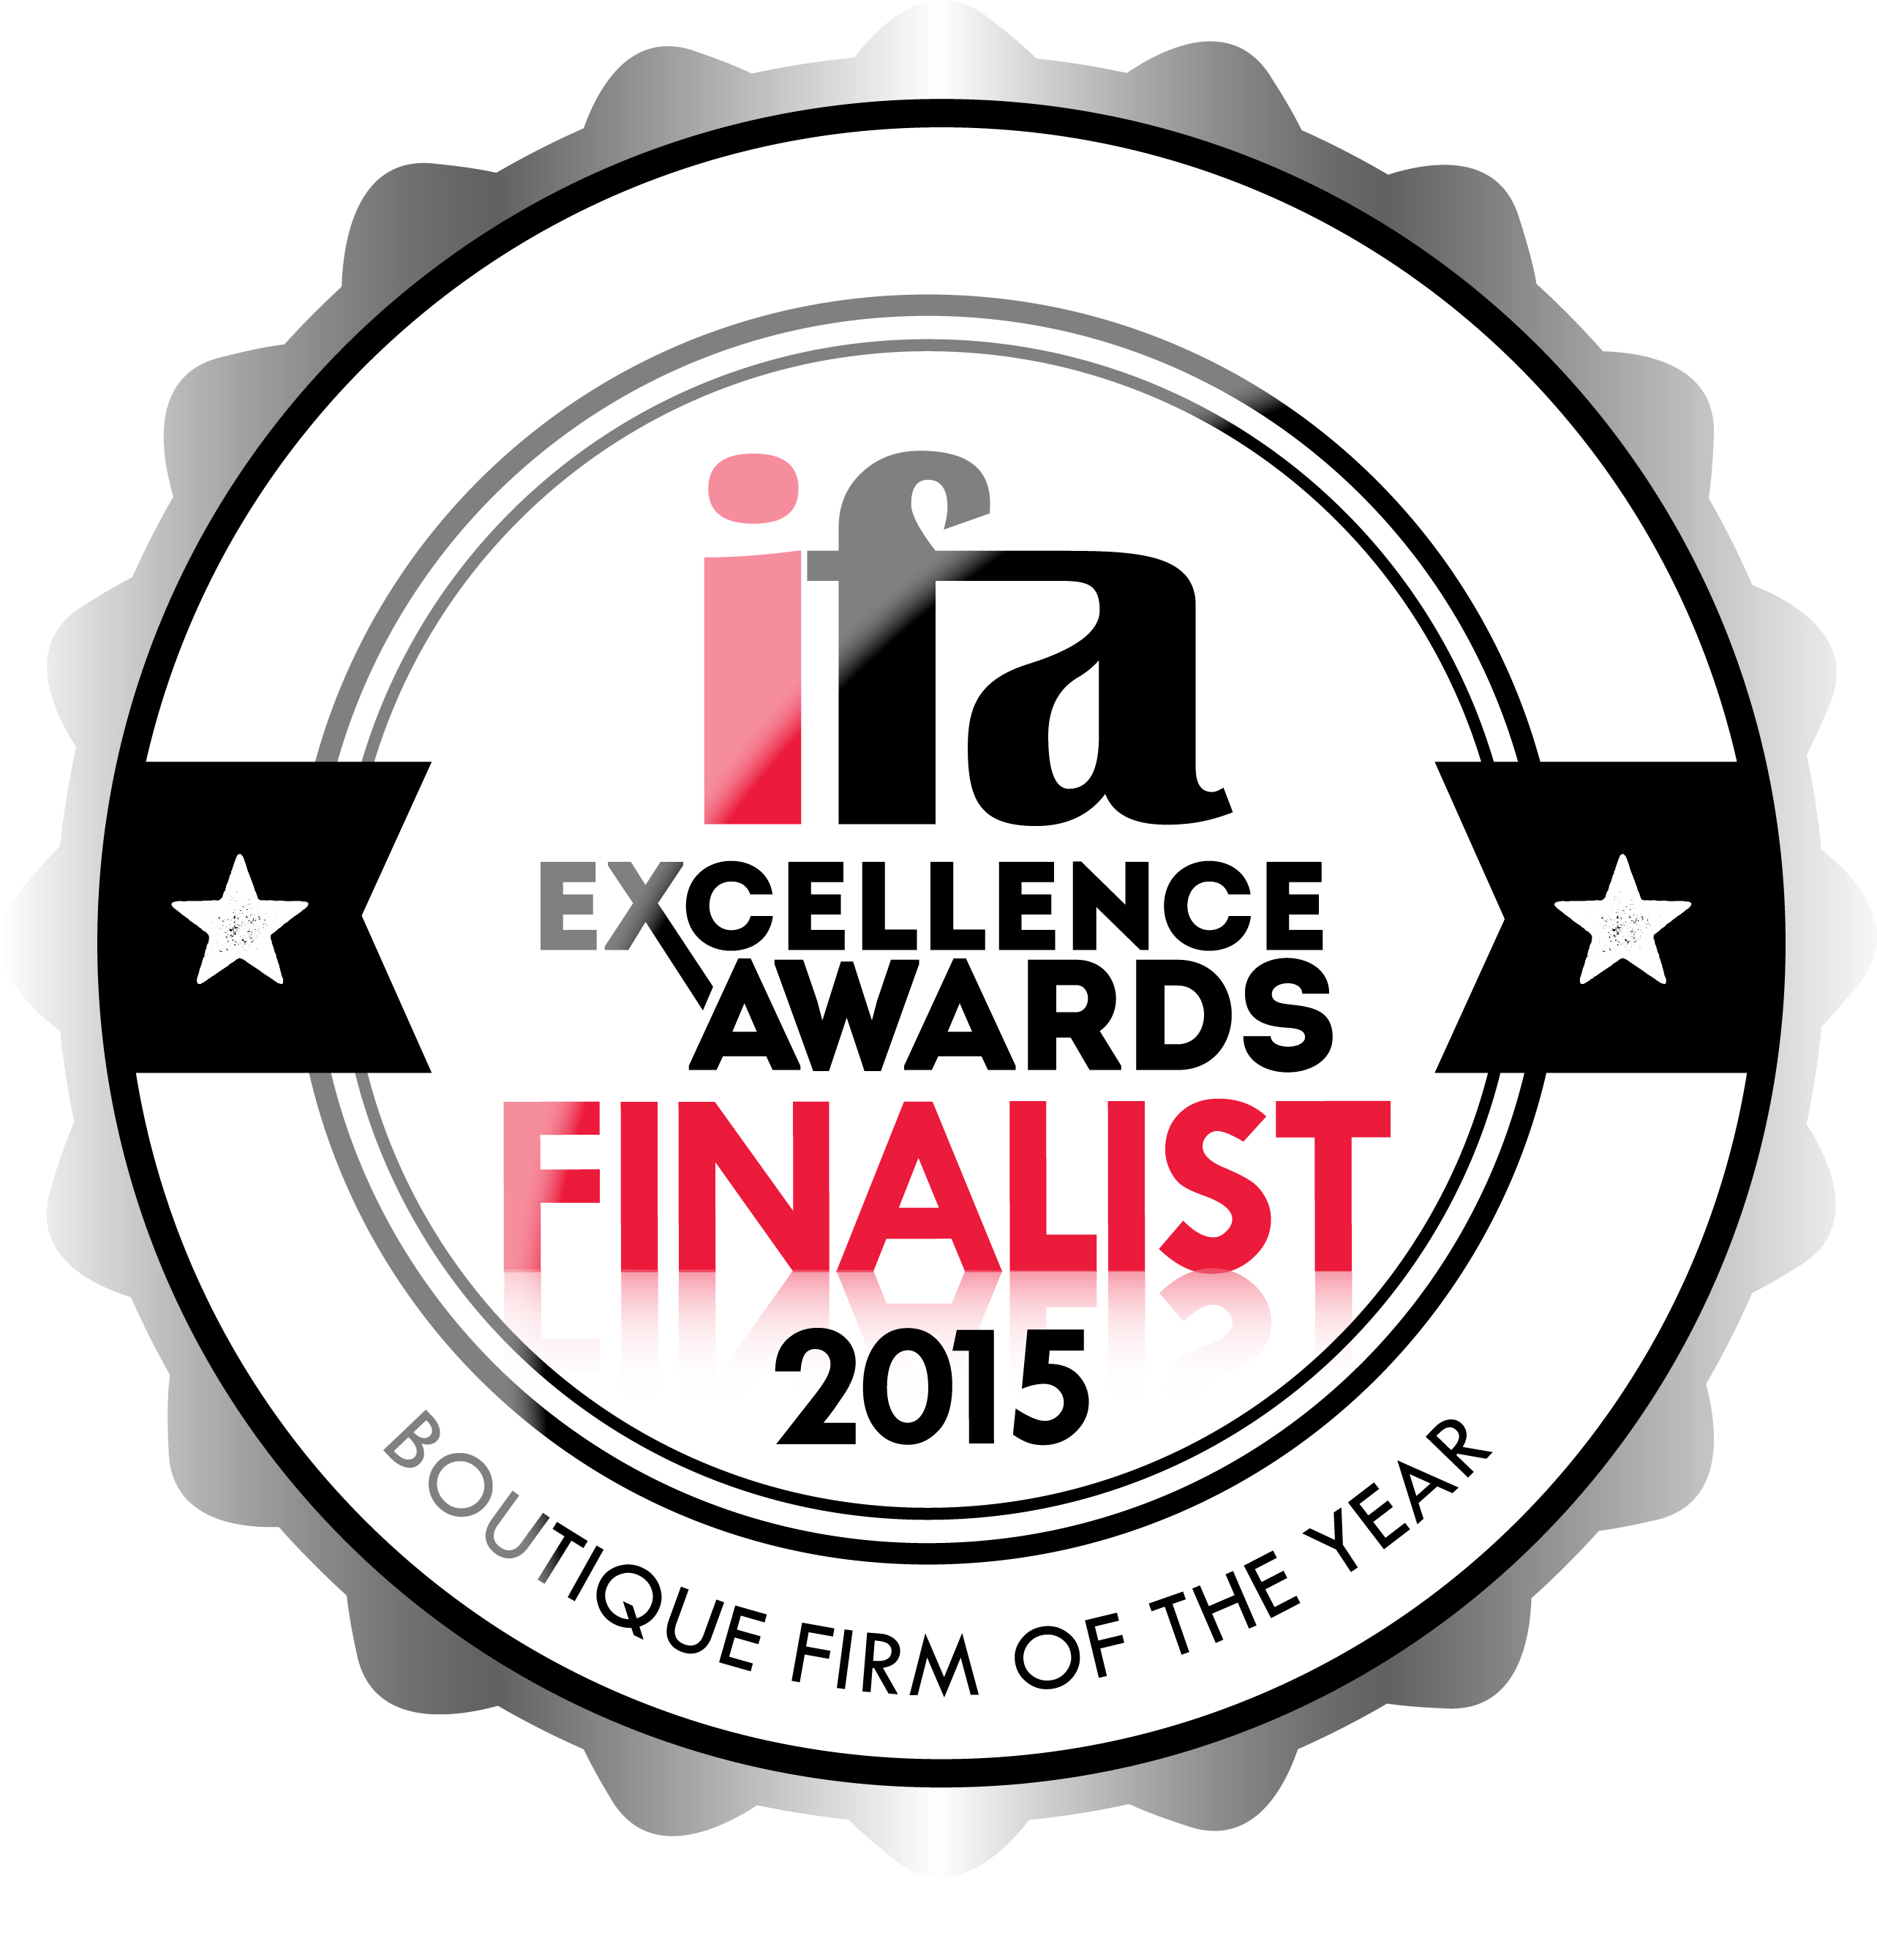 FINALIST_BOUTIQUE_FIRM_OF_THE_YR